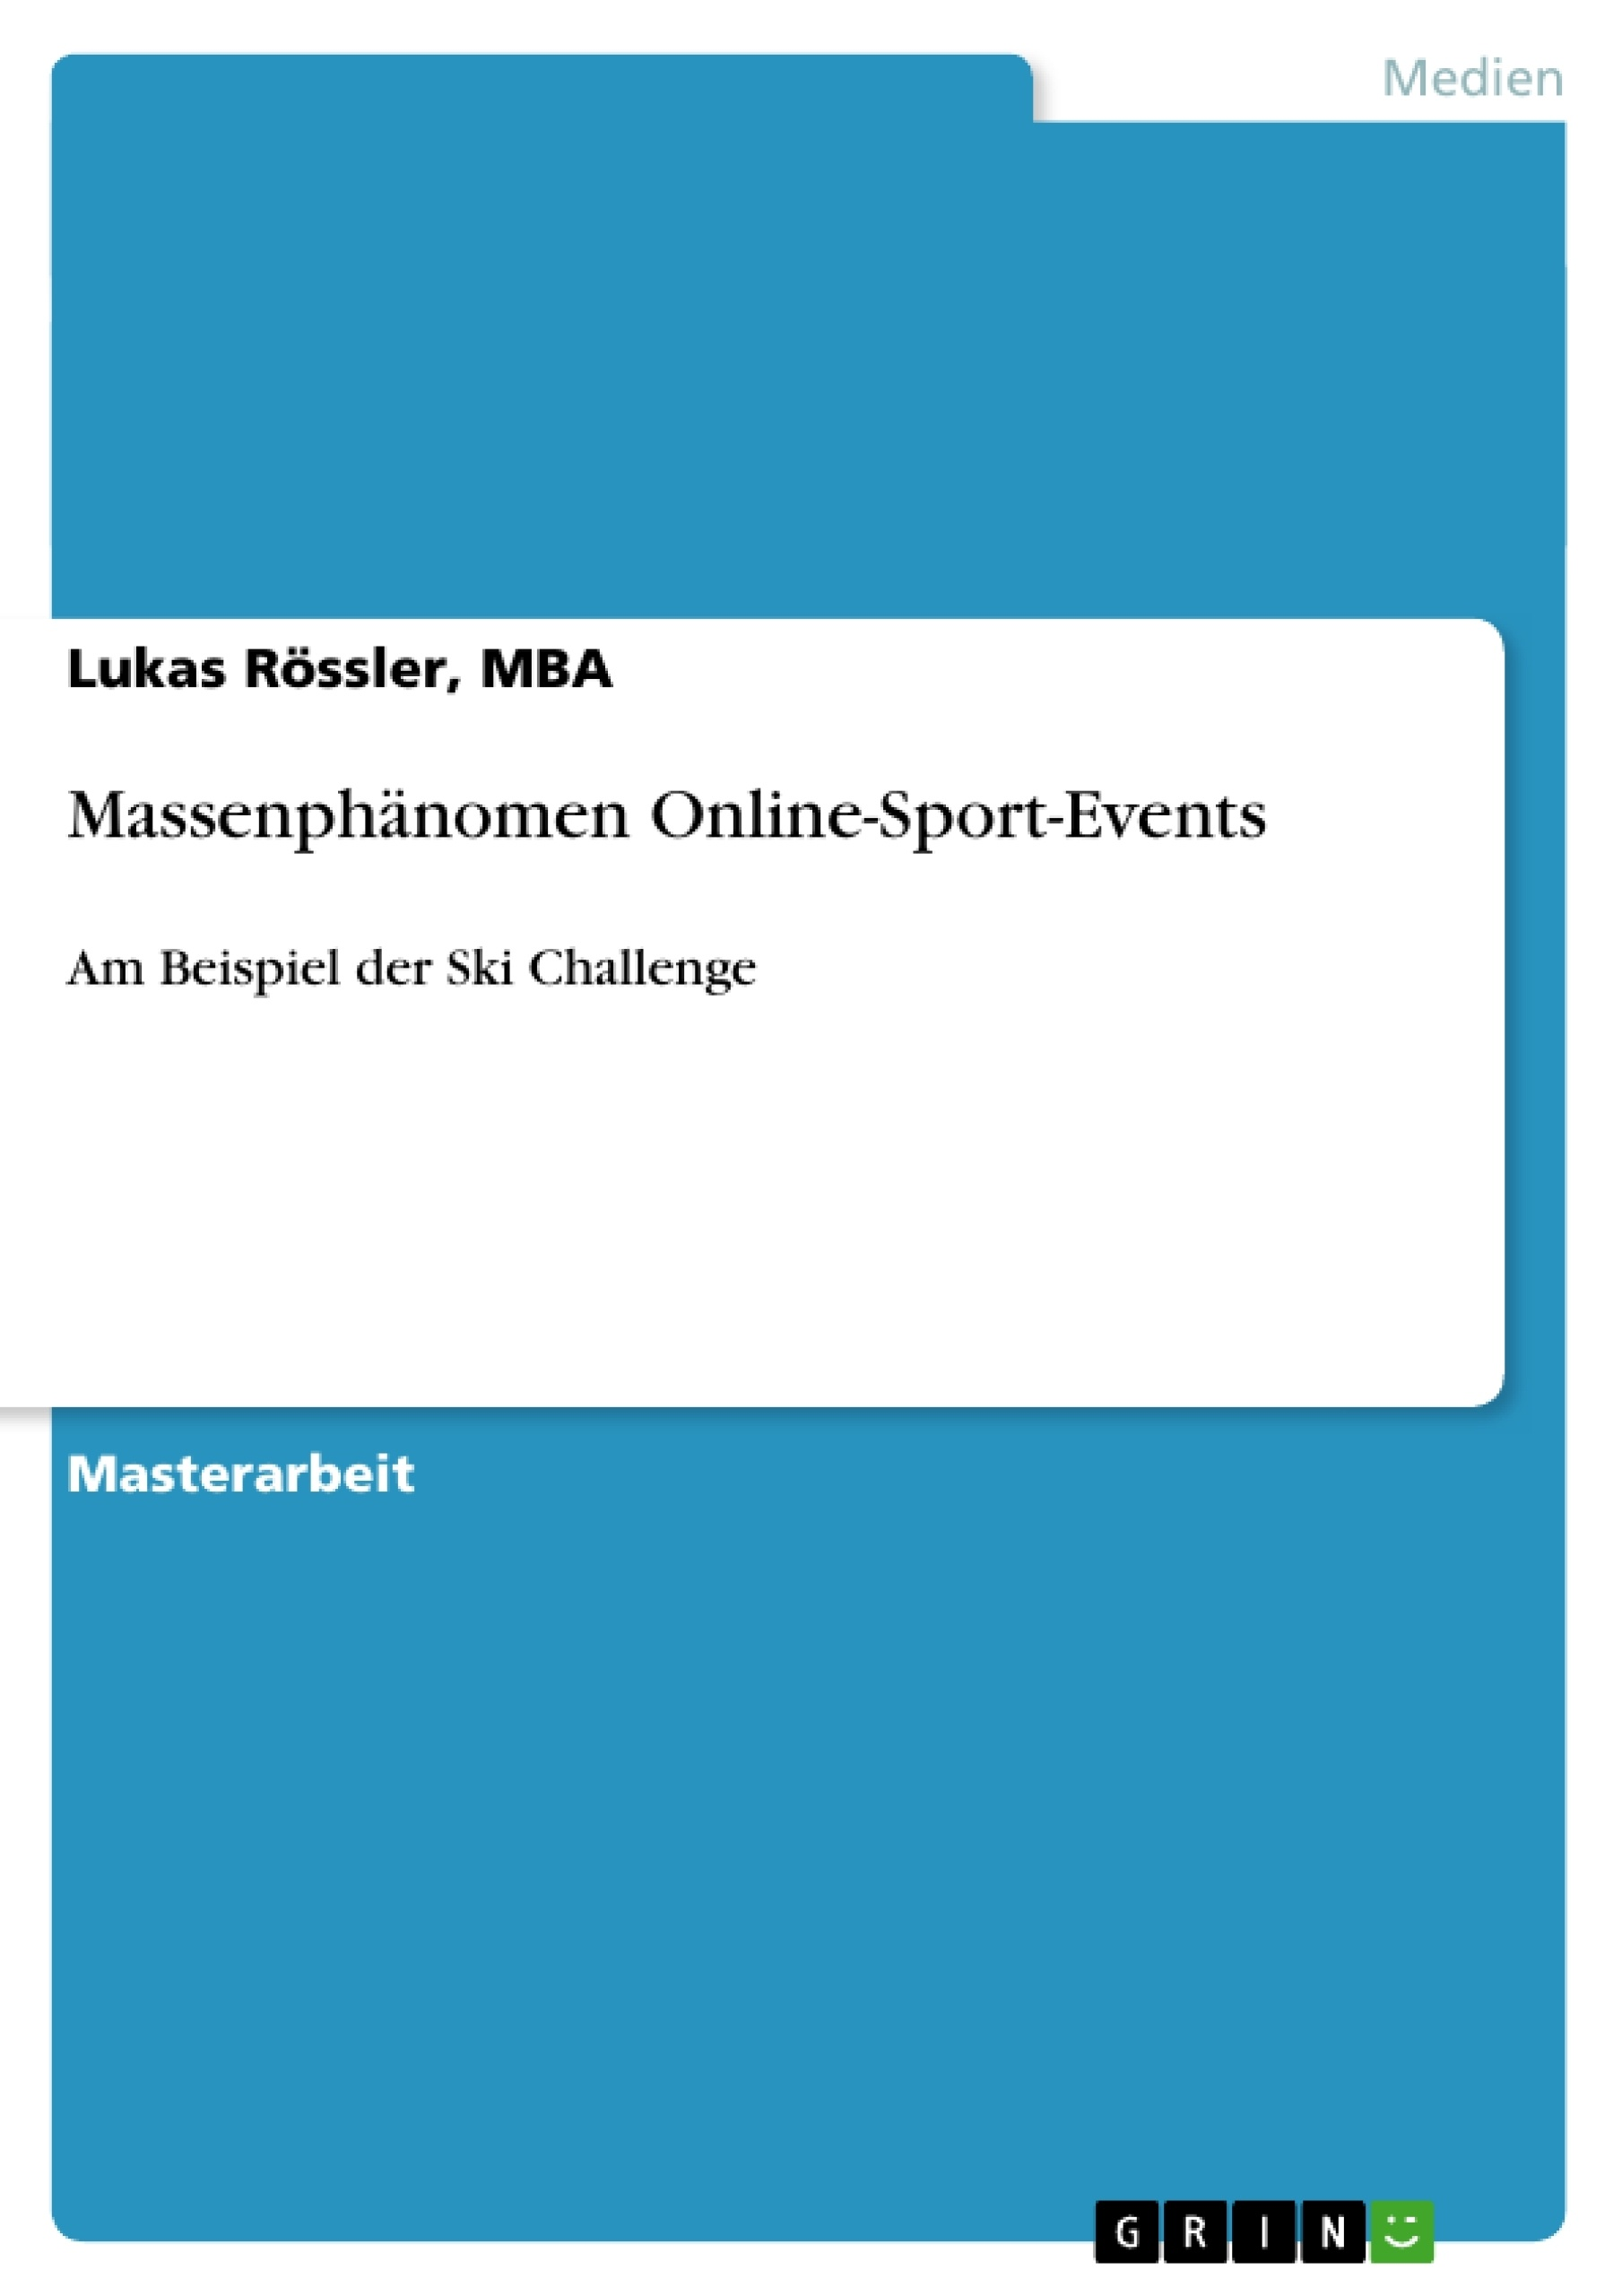 Titel: Massenphänomen Online-Sport-Events